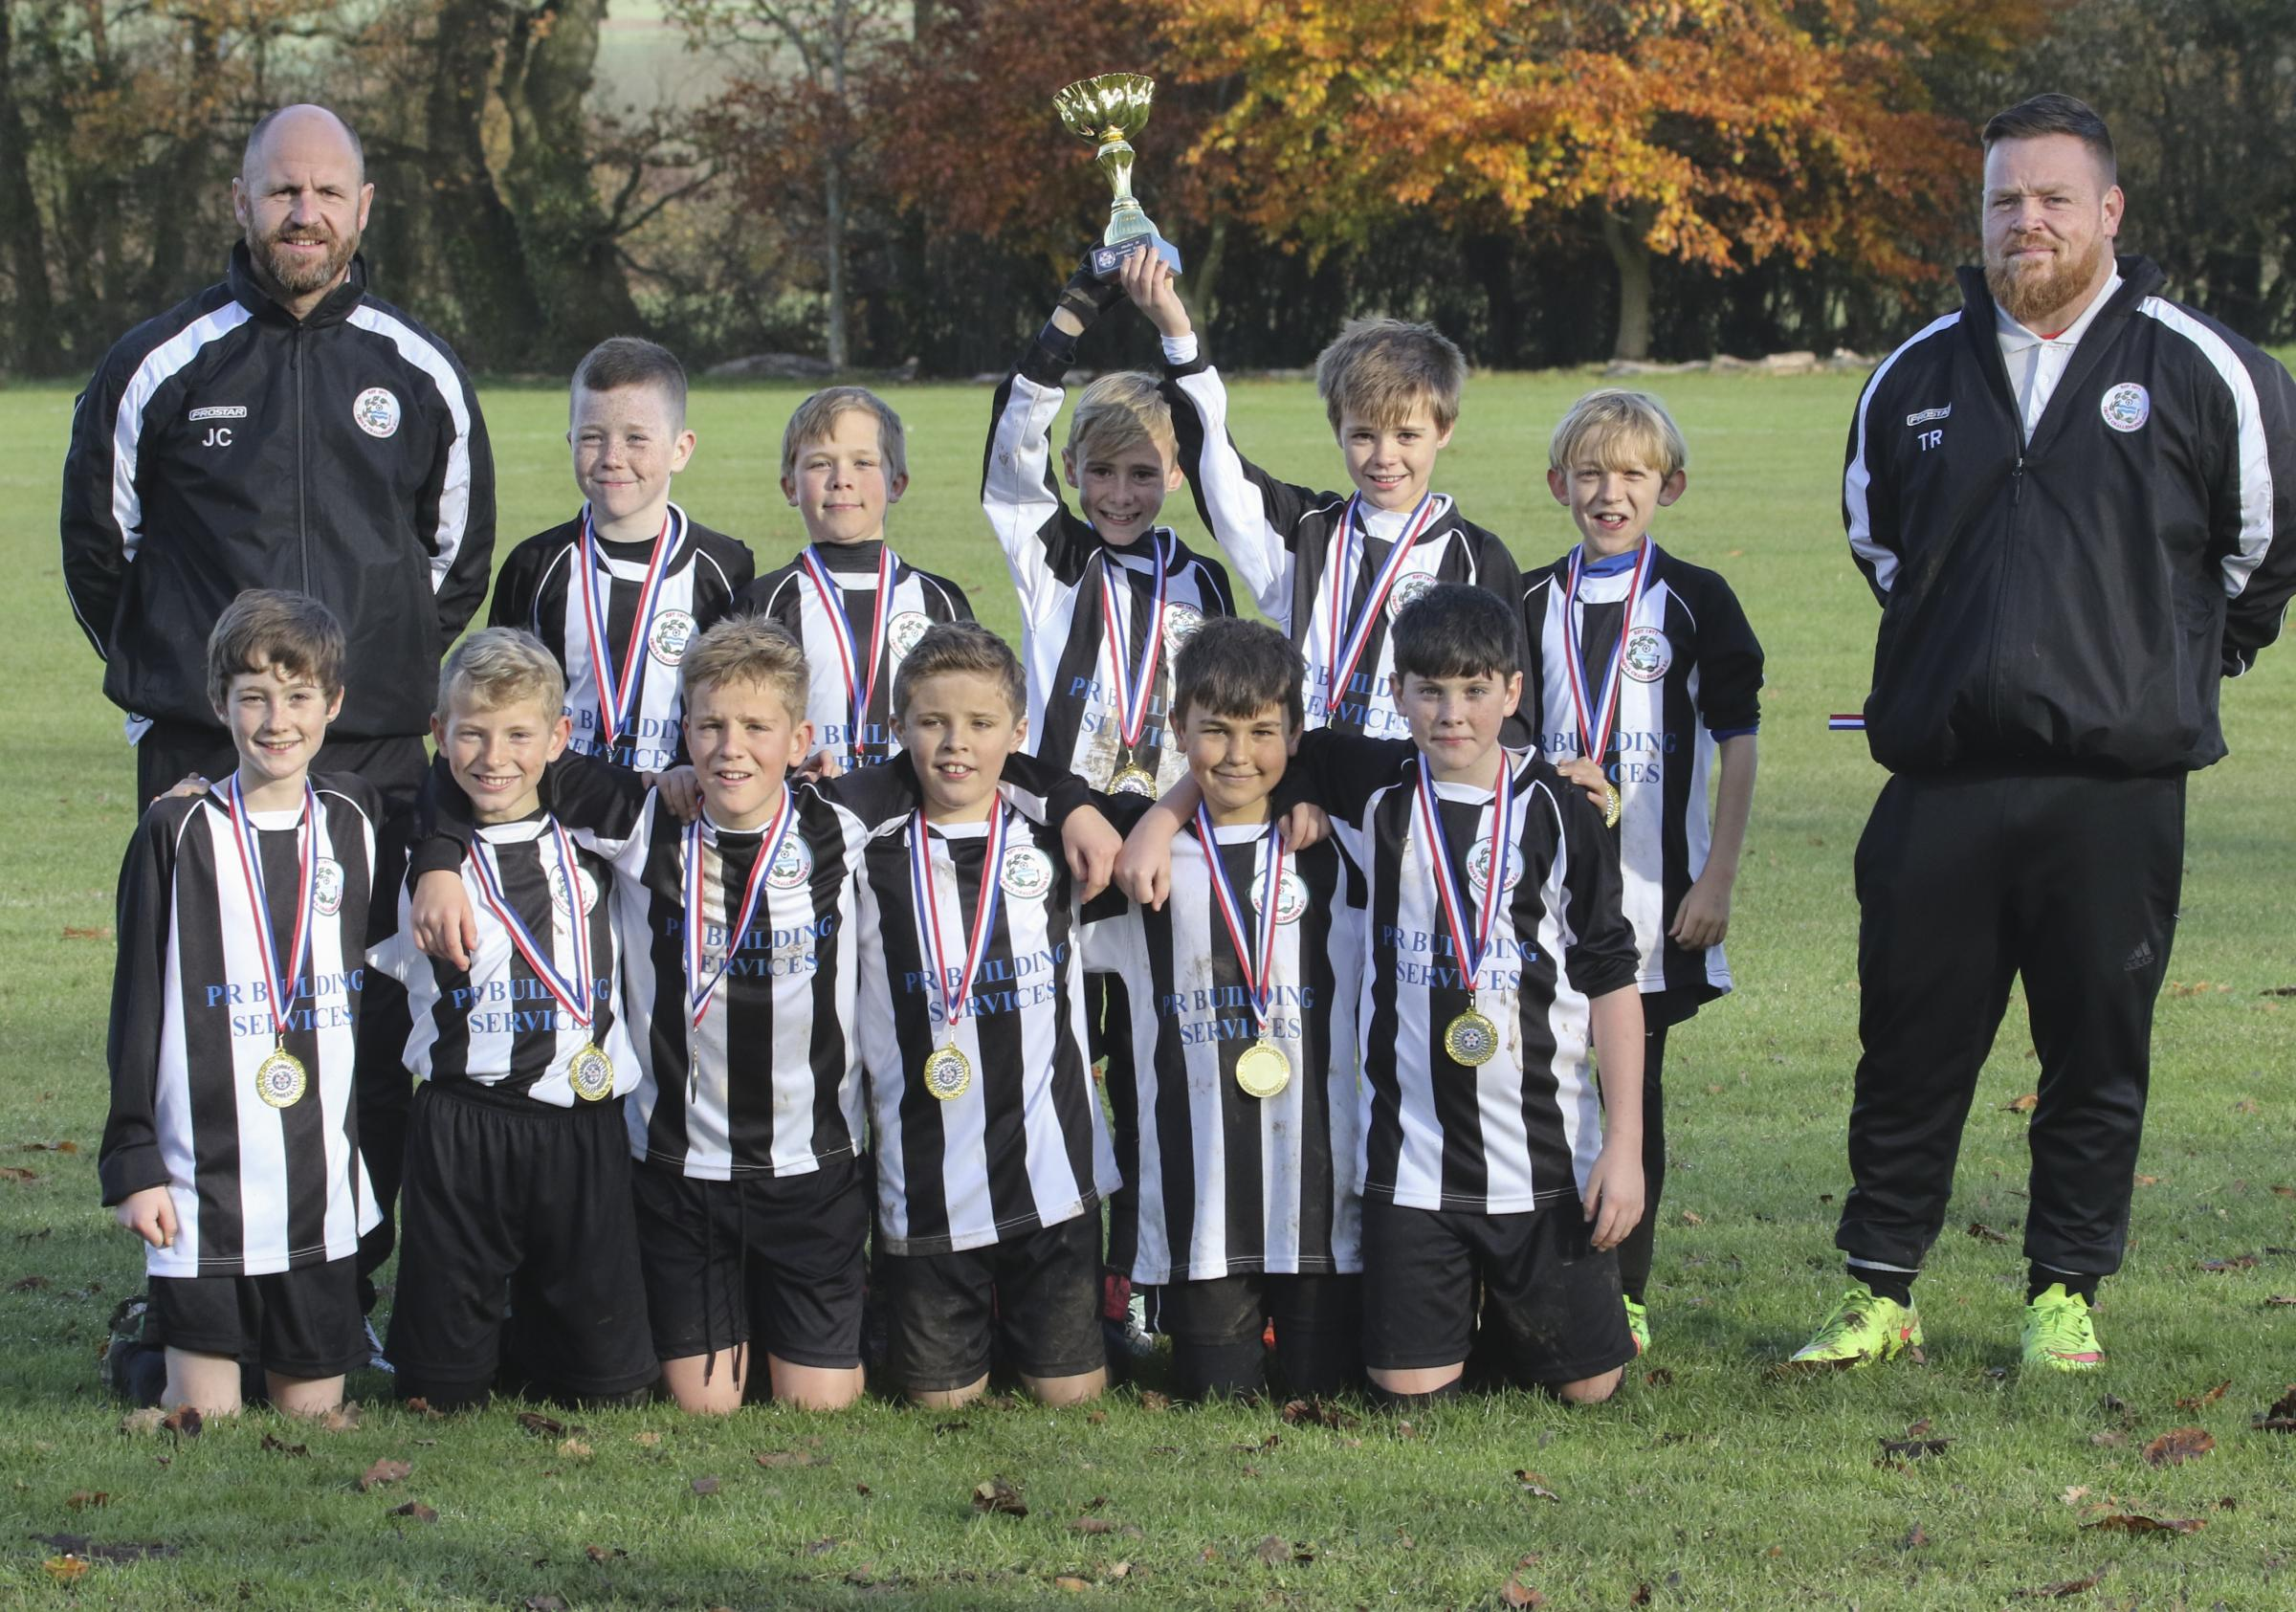 SILVERWARE: Grove Challengers White celebrate after winning the Oxford Mail Youth League Under 11 Supplementary Cup. The team who are sponsored by PR Building Services, beat Headington 6-2 in the final. The team, pictured with coaches Tony Reed and Jason